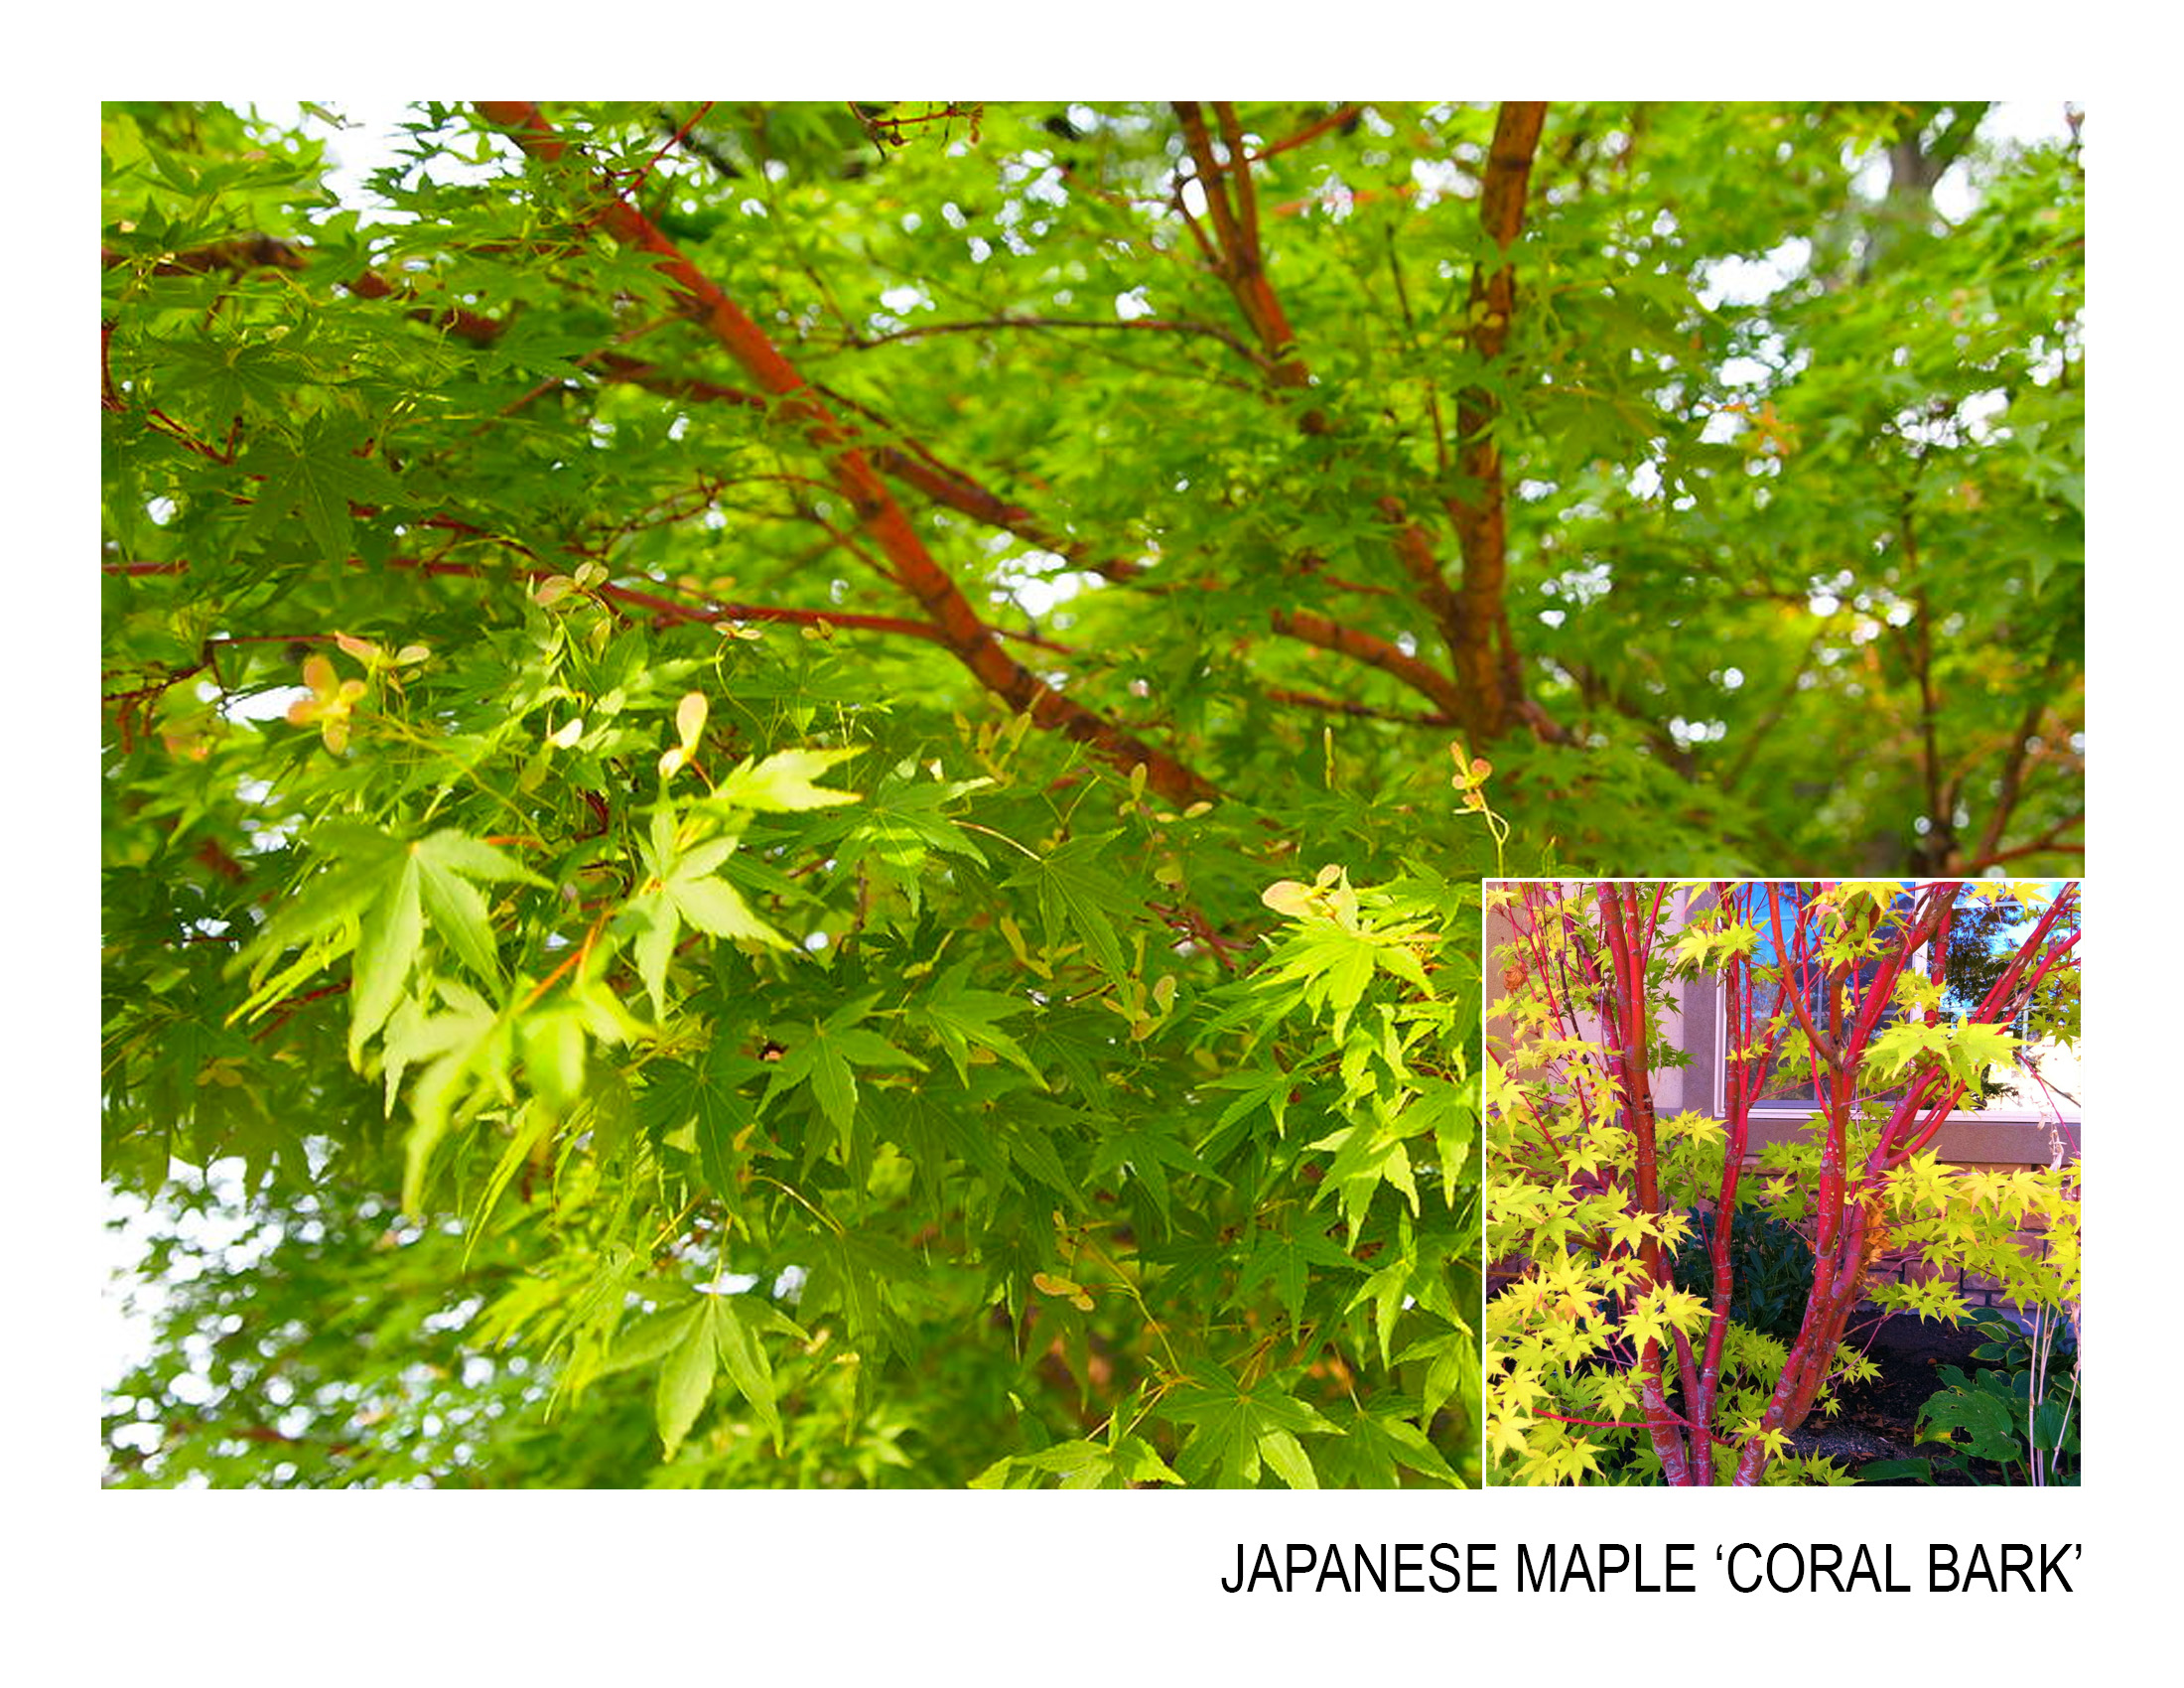 japanese maple 'coral bark'.jpg